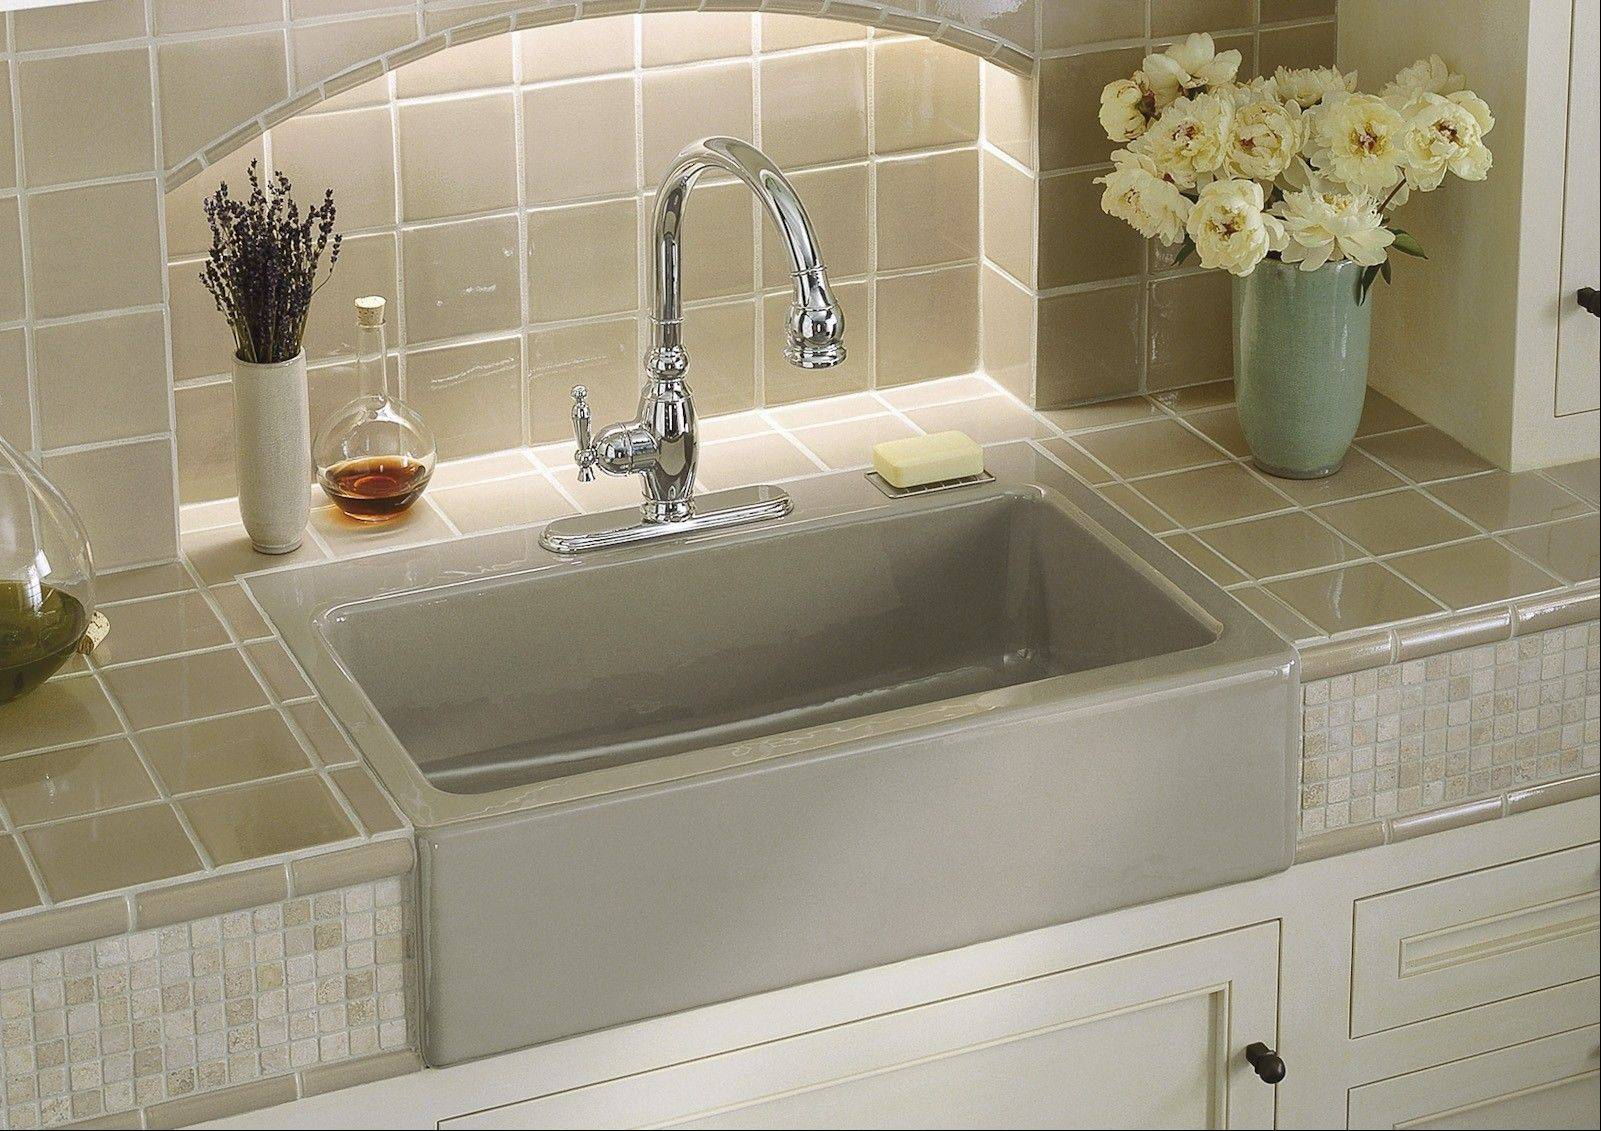 The farmhouse sink has become the darling of many contemporary kitchens.